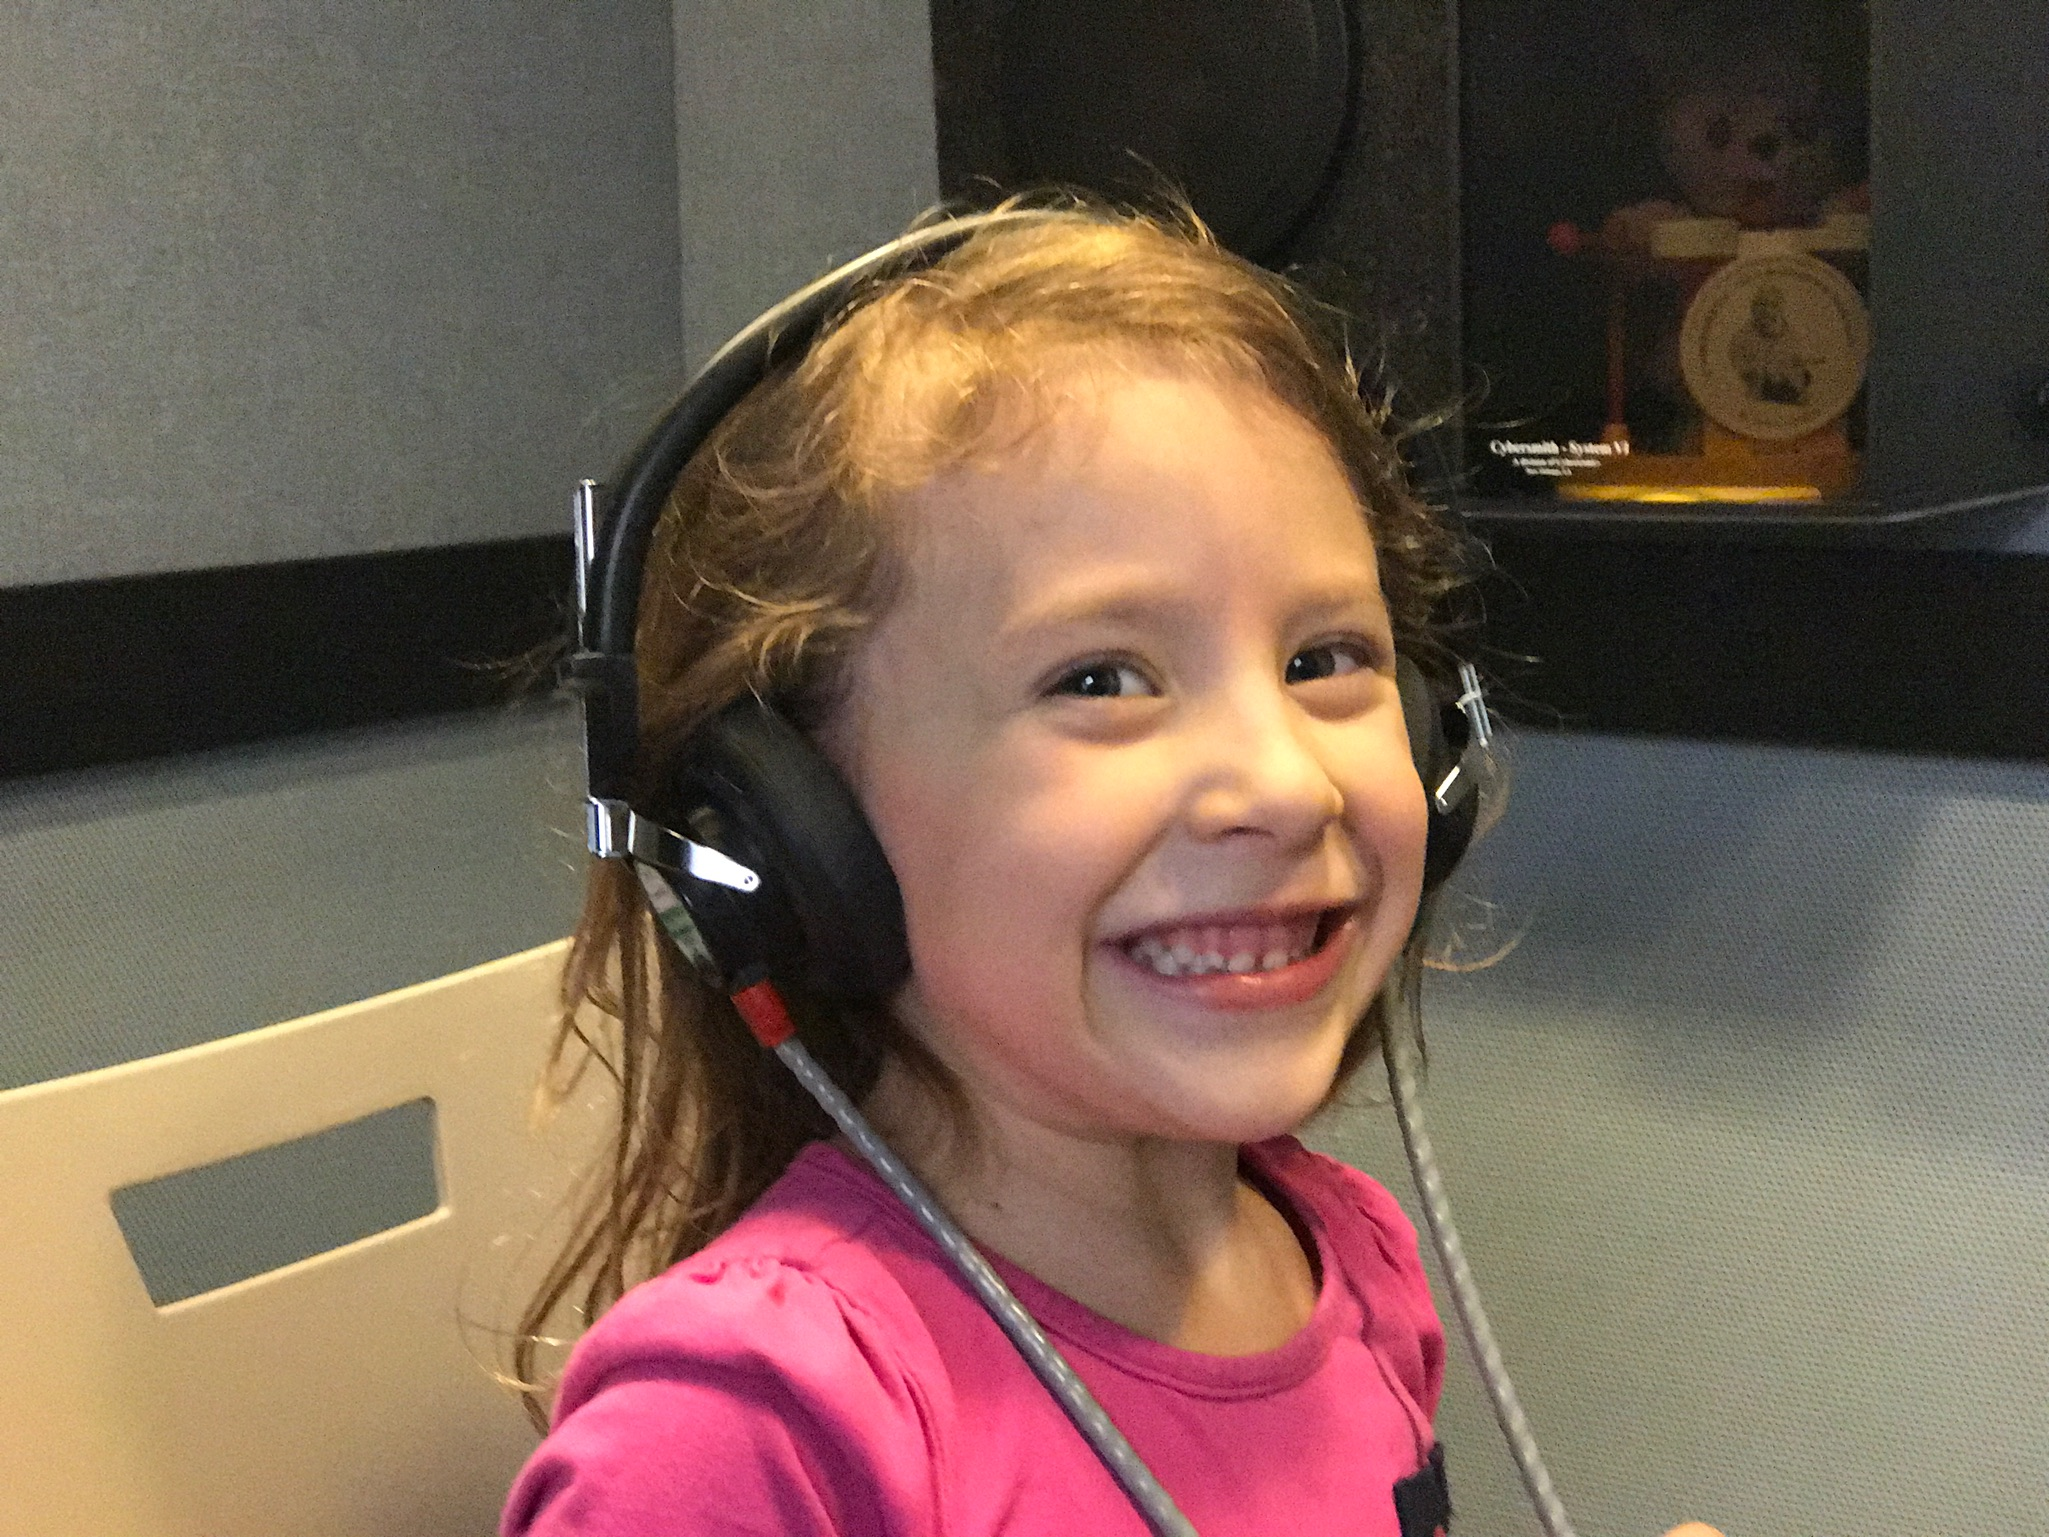 Pediatric patient is excited to have her hearing tested at the UWSHC.